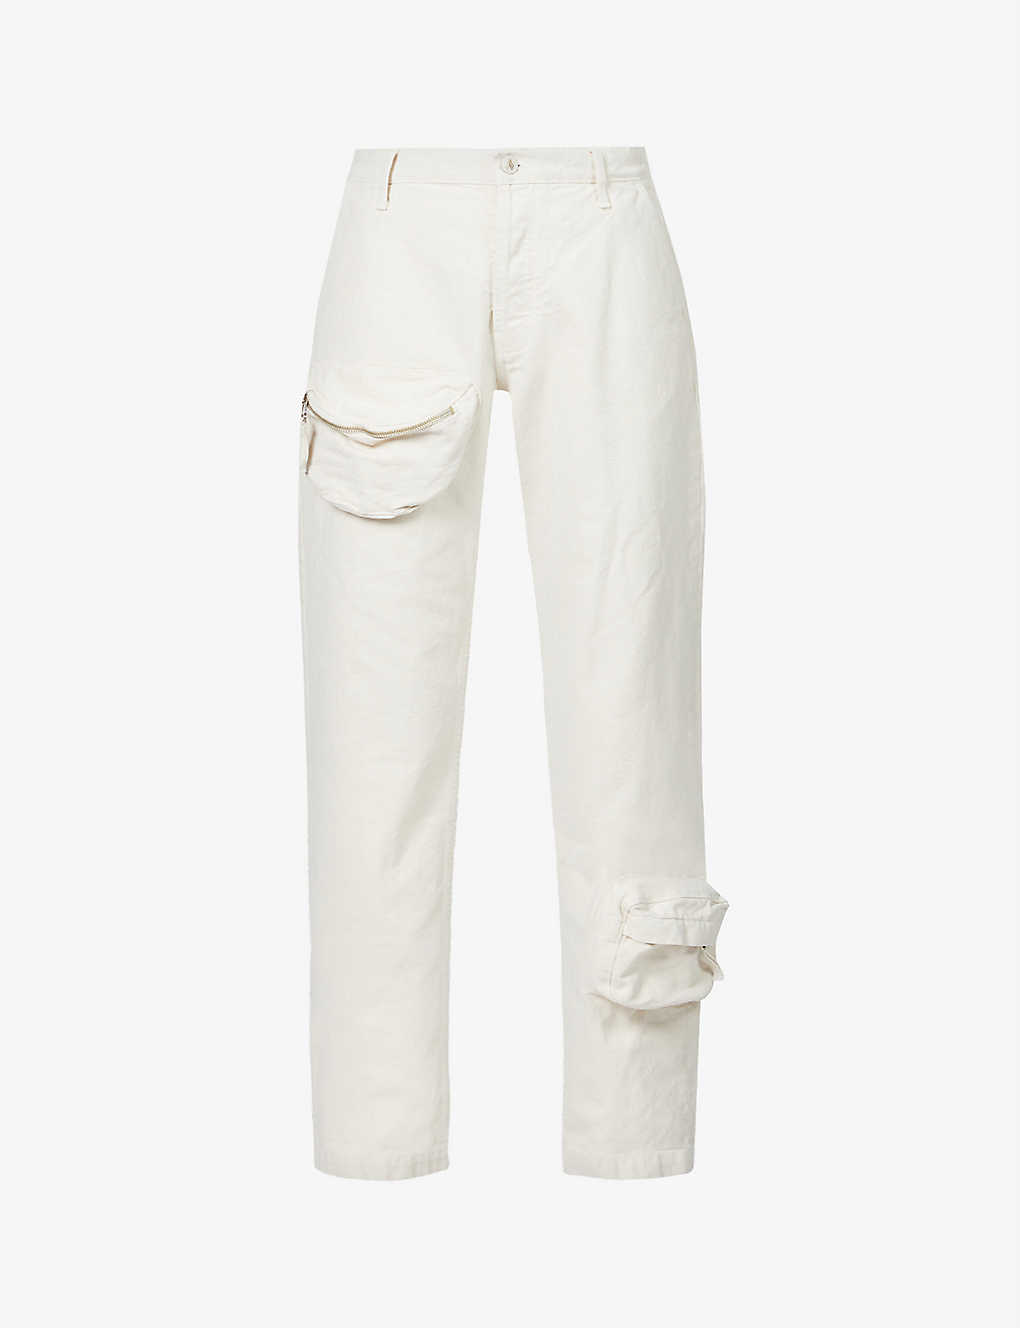 Straight-leg high-rise denim trousers by The Attico, available on selfridges.com for $720 Hailey Baldwin Top Exact Product